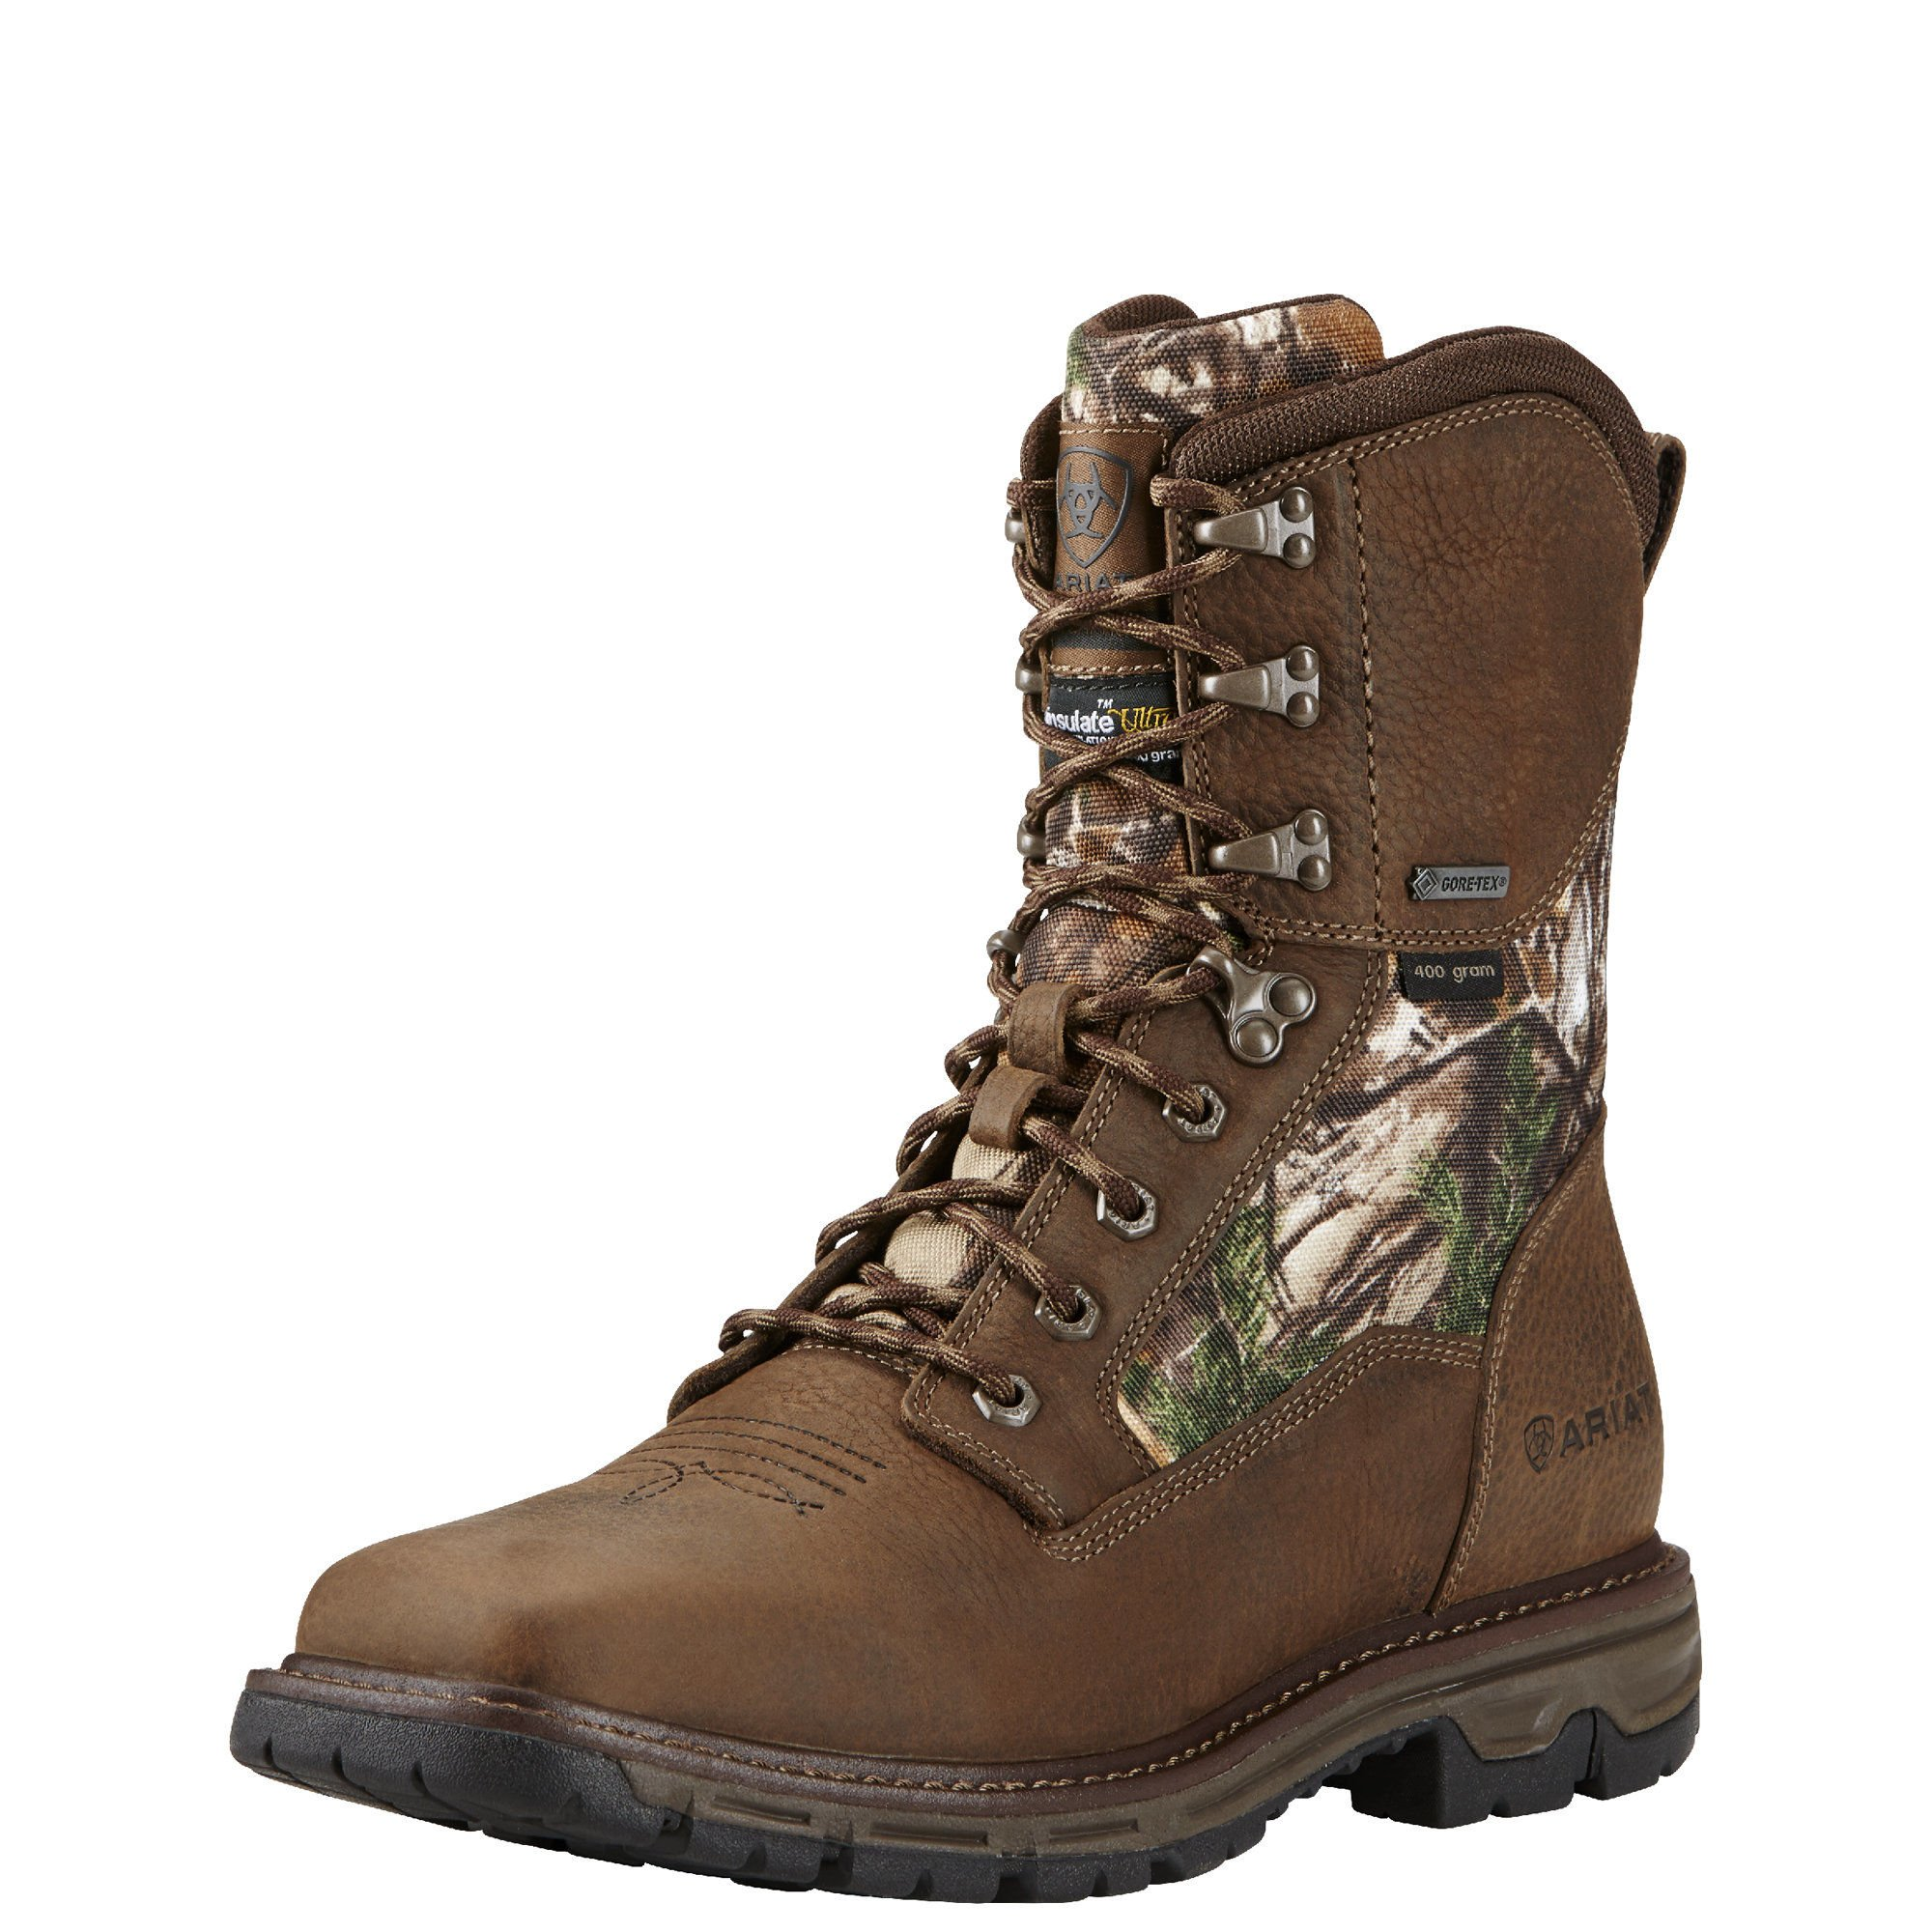 Ariat Men's Conquest Wide Square 8'' GTX Hunting Boot